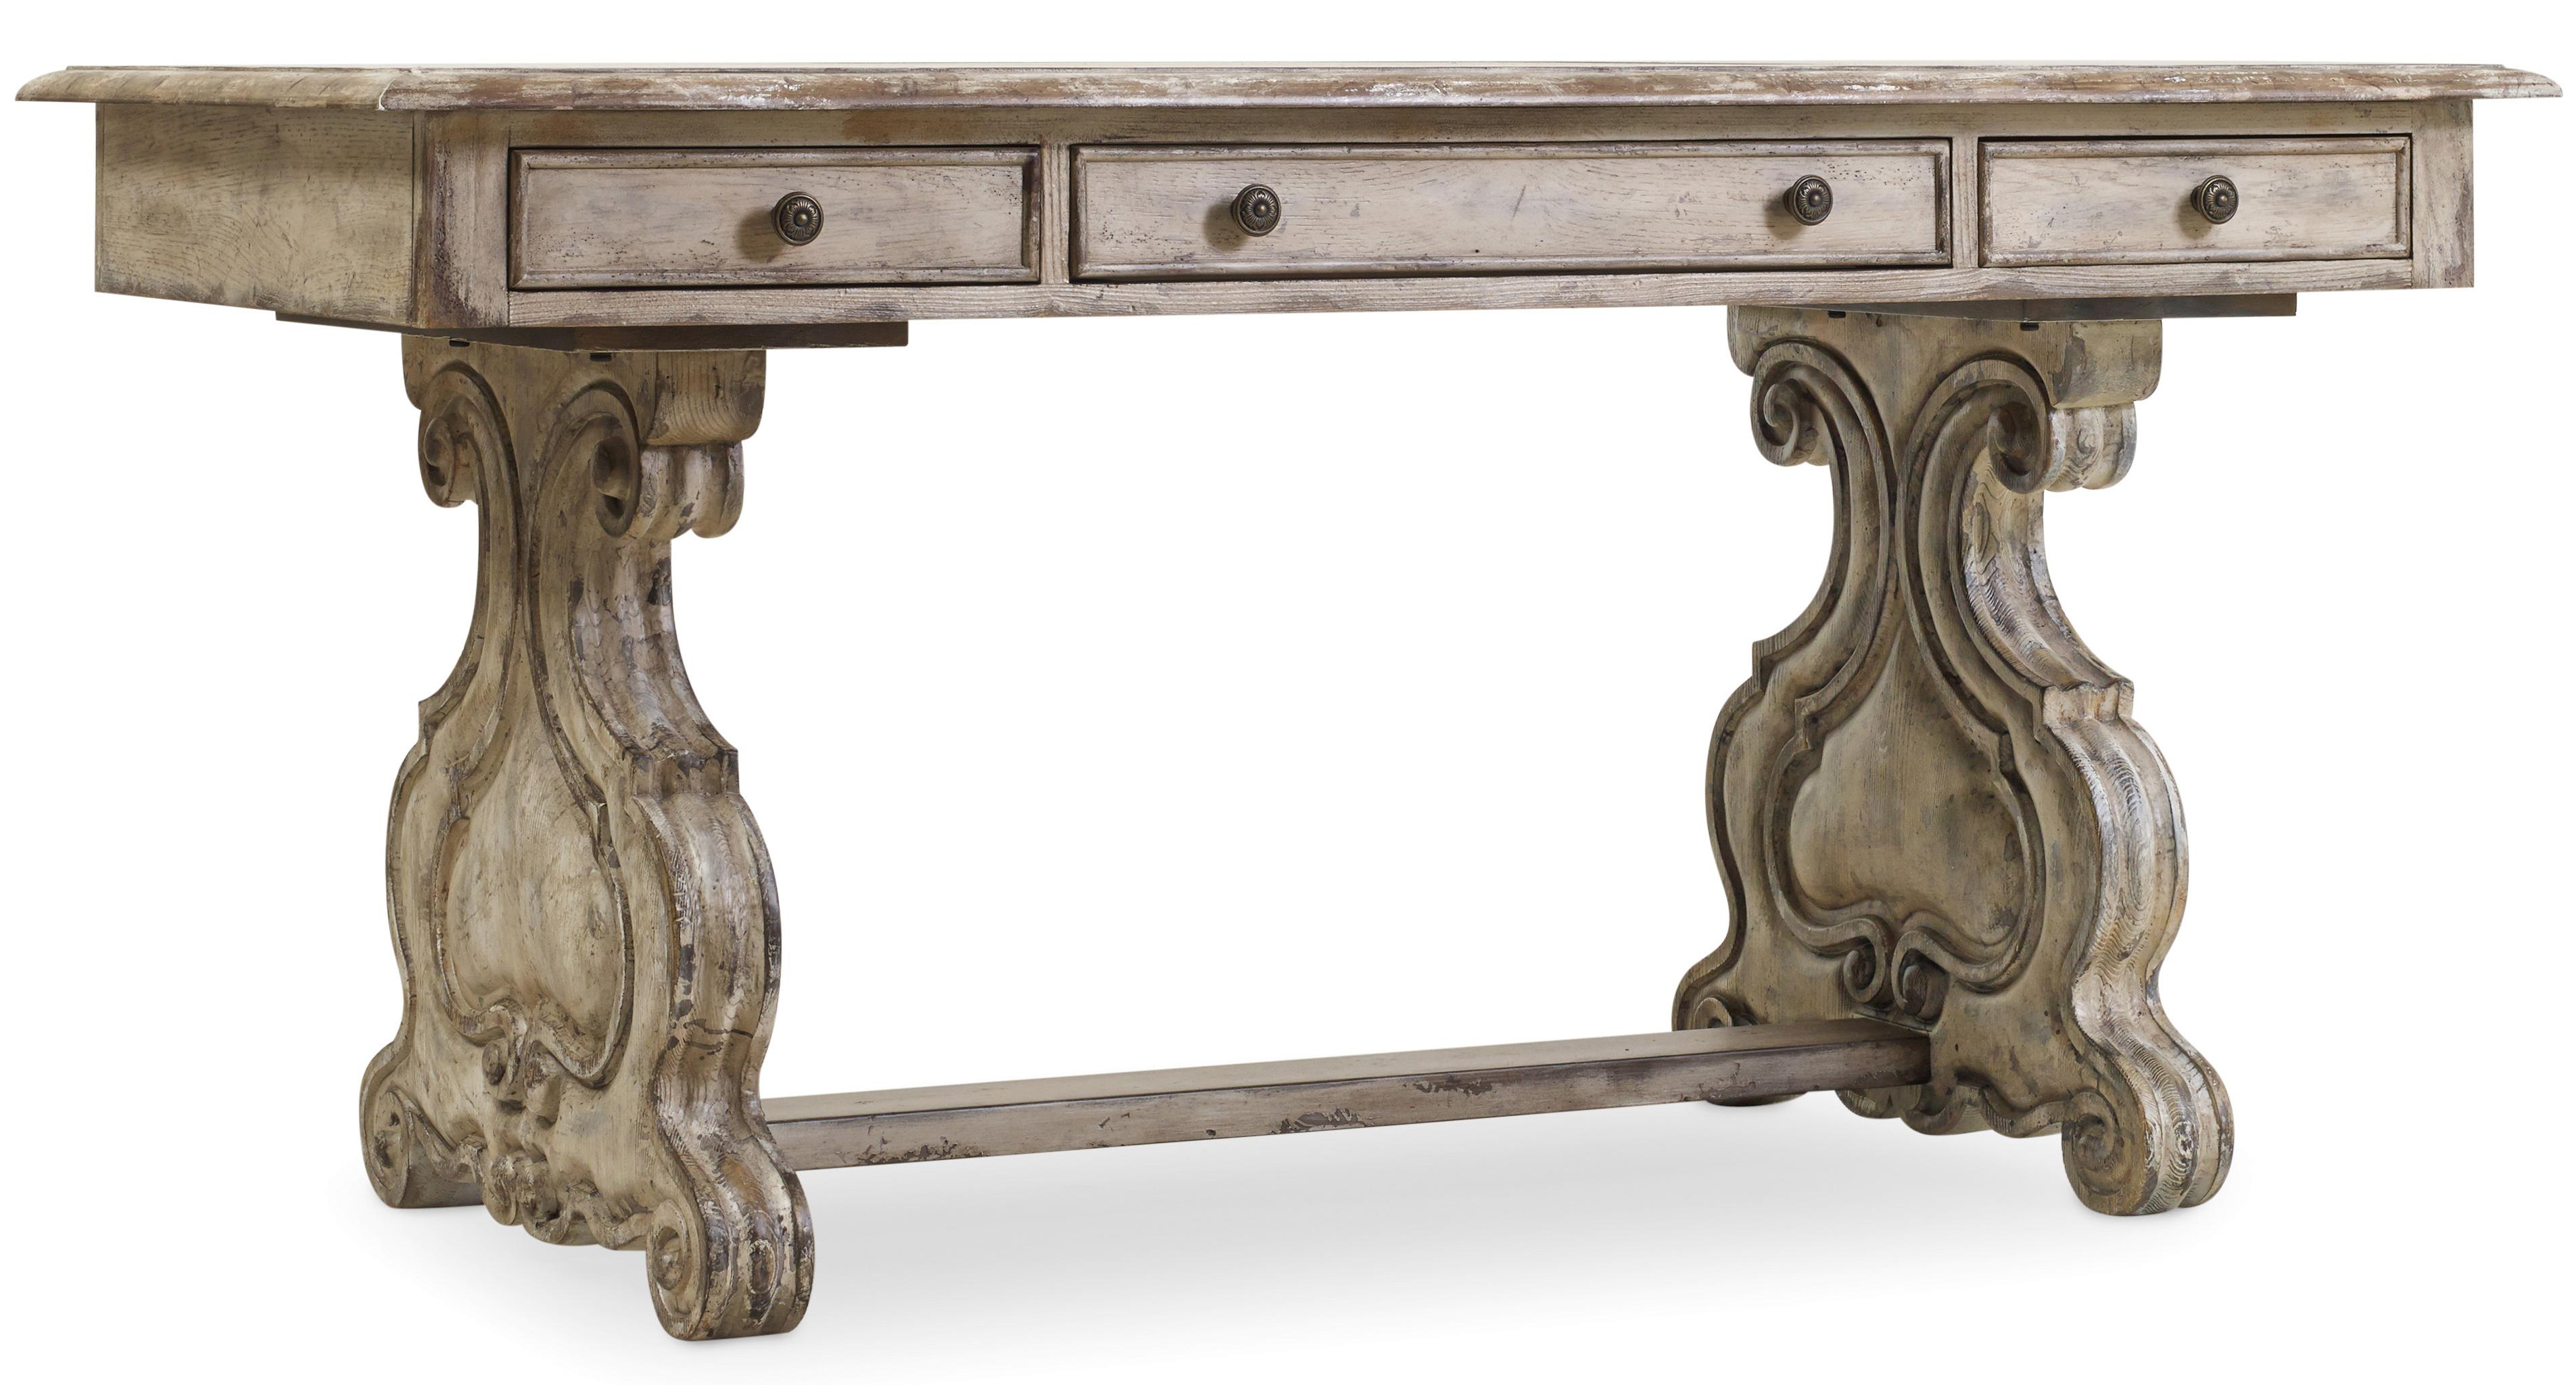 Hooker Furniture Chatelet Trestle Writing Desk - Item Number: 5350-10459